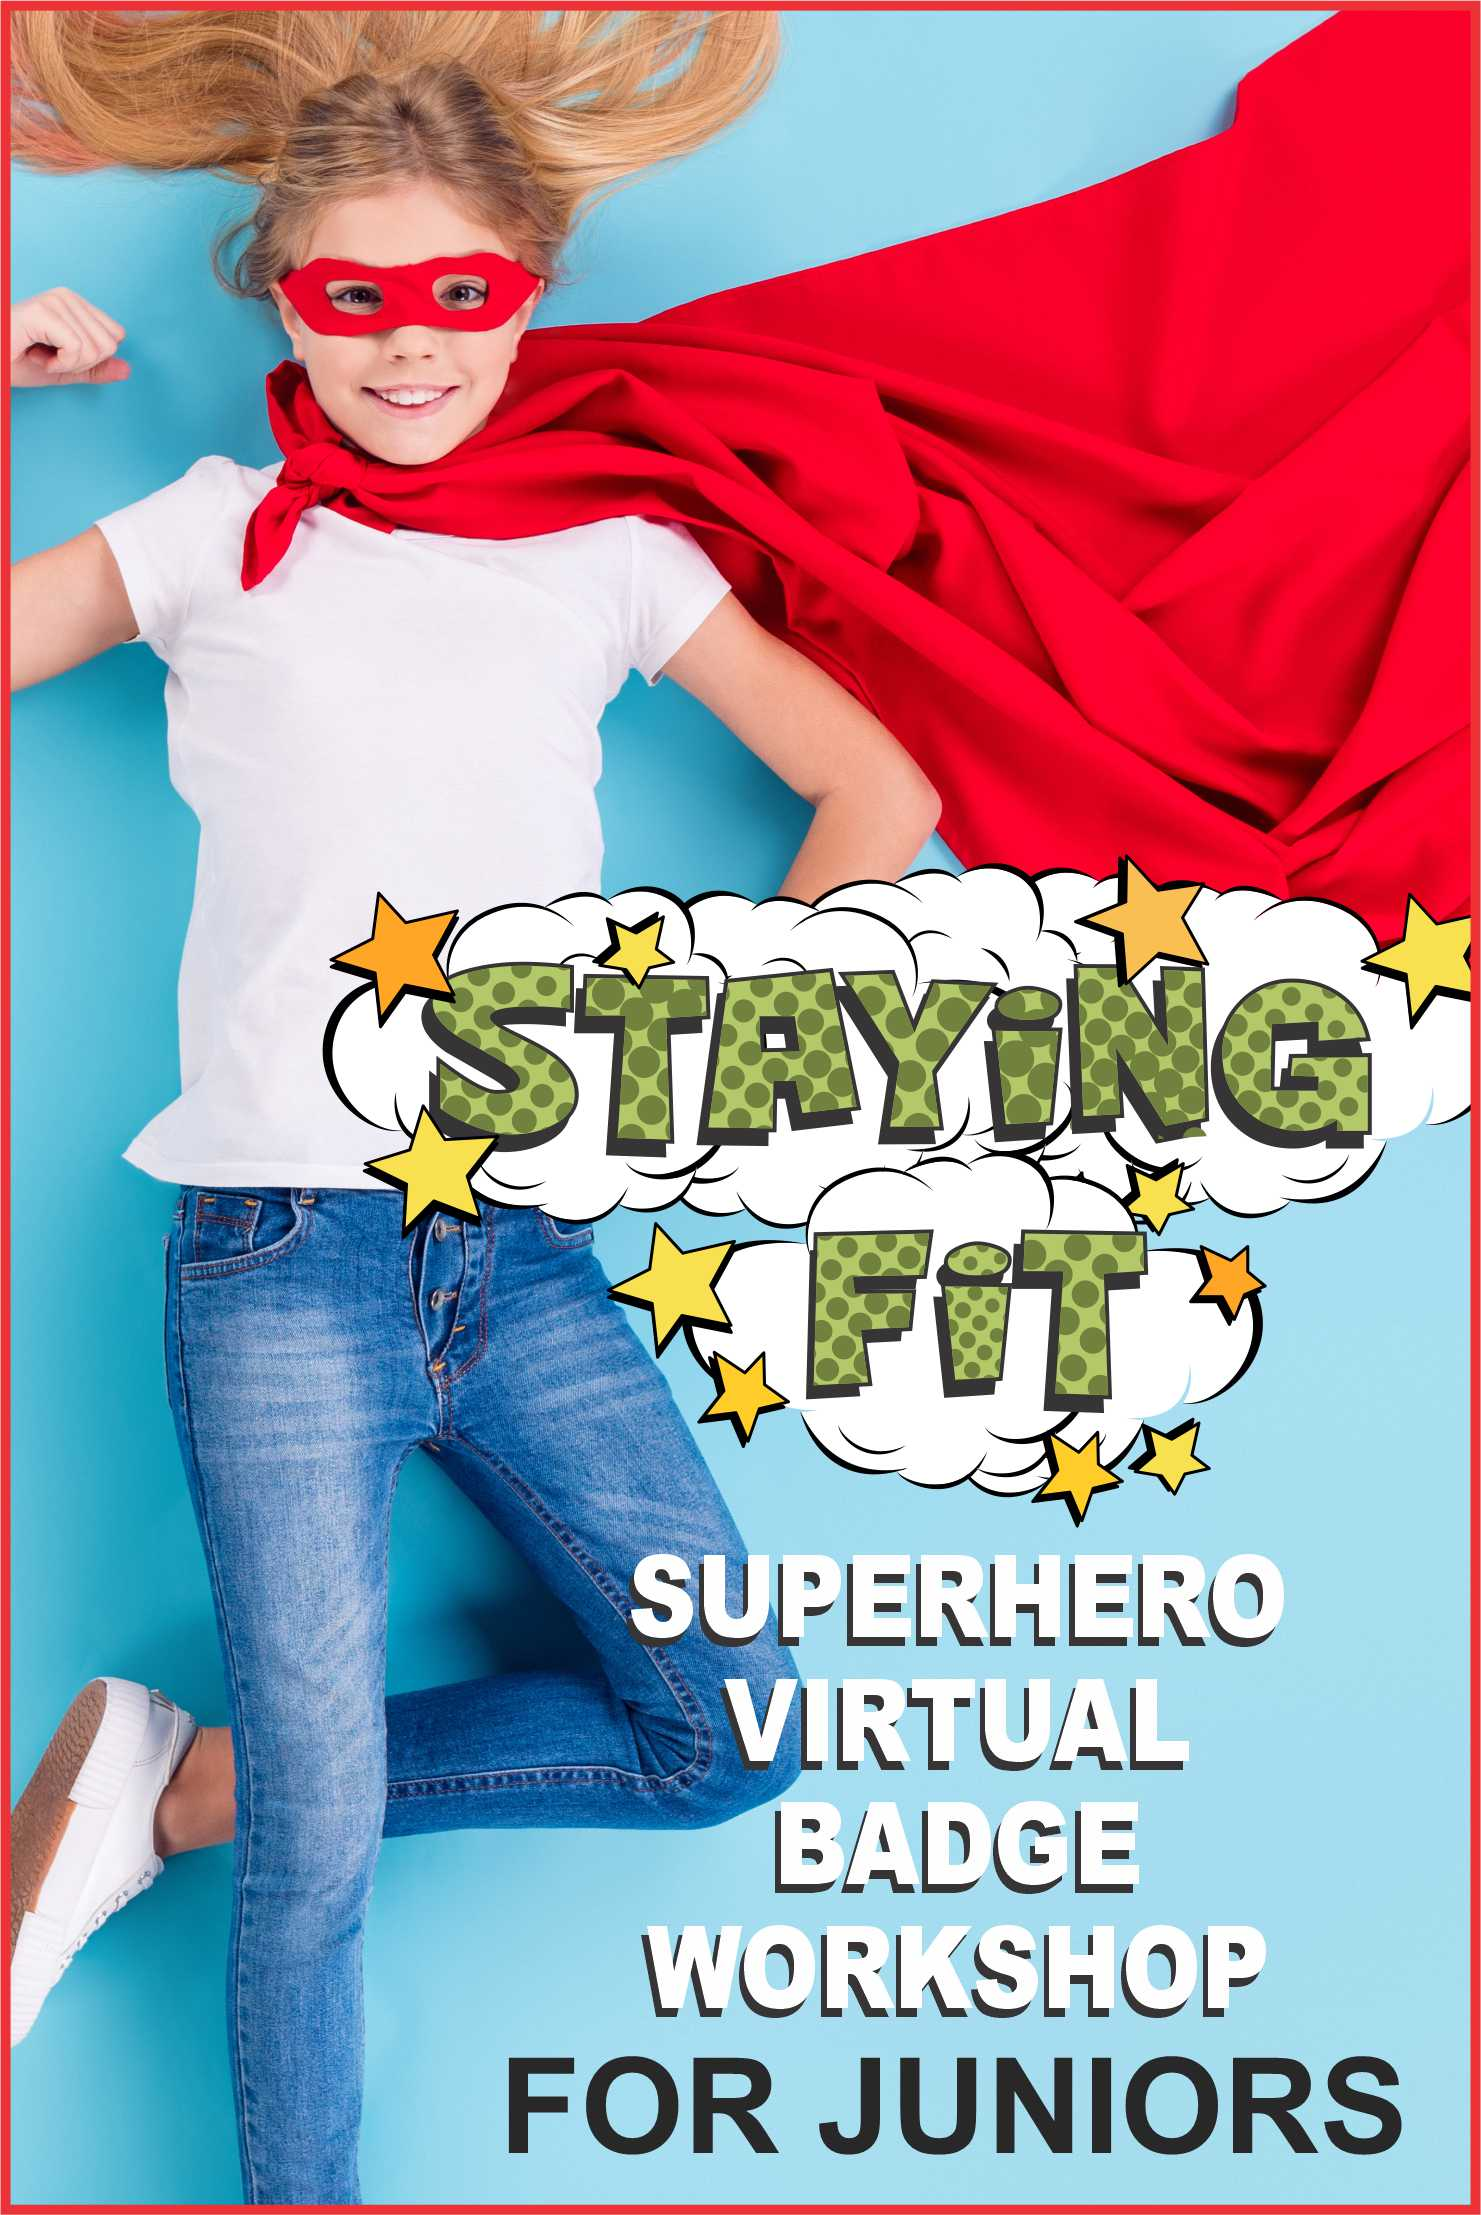 Come dressed like a superhero and join Superheroes Jackie and Freedom for our 1-hour Junior Staying Fit Workshop on Zoom! #makingfriends #stayingfit #gsonline #superhero #virtualworkshop #onlineclass #zoomworkshop #girlscouts #gsworkshop #juniors via @gsleader411